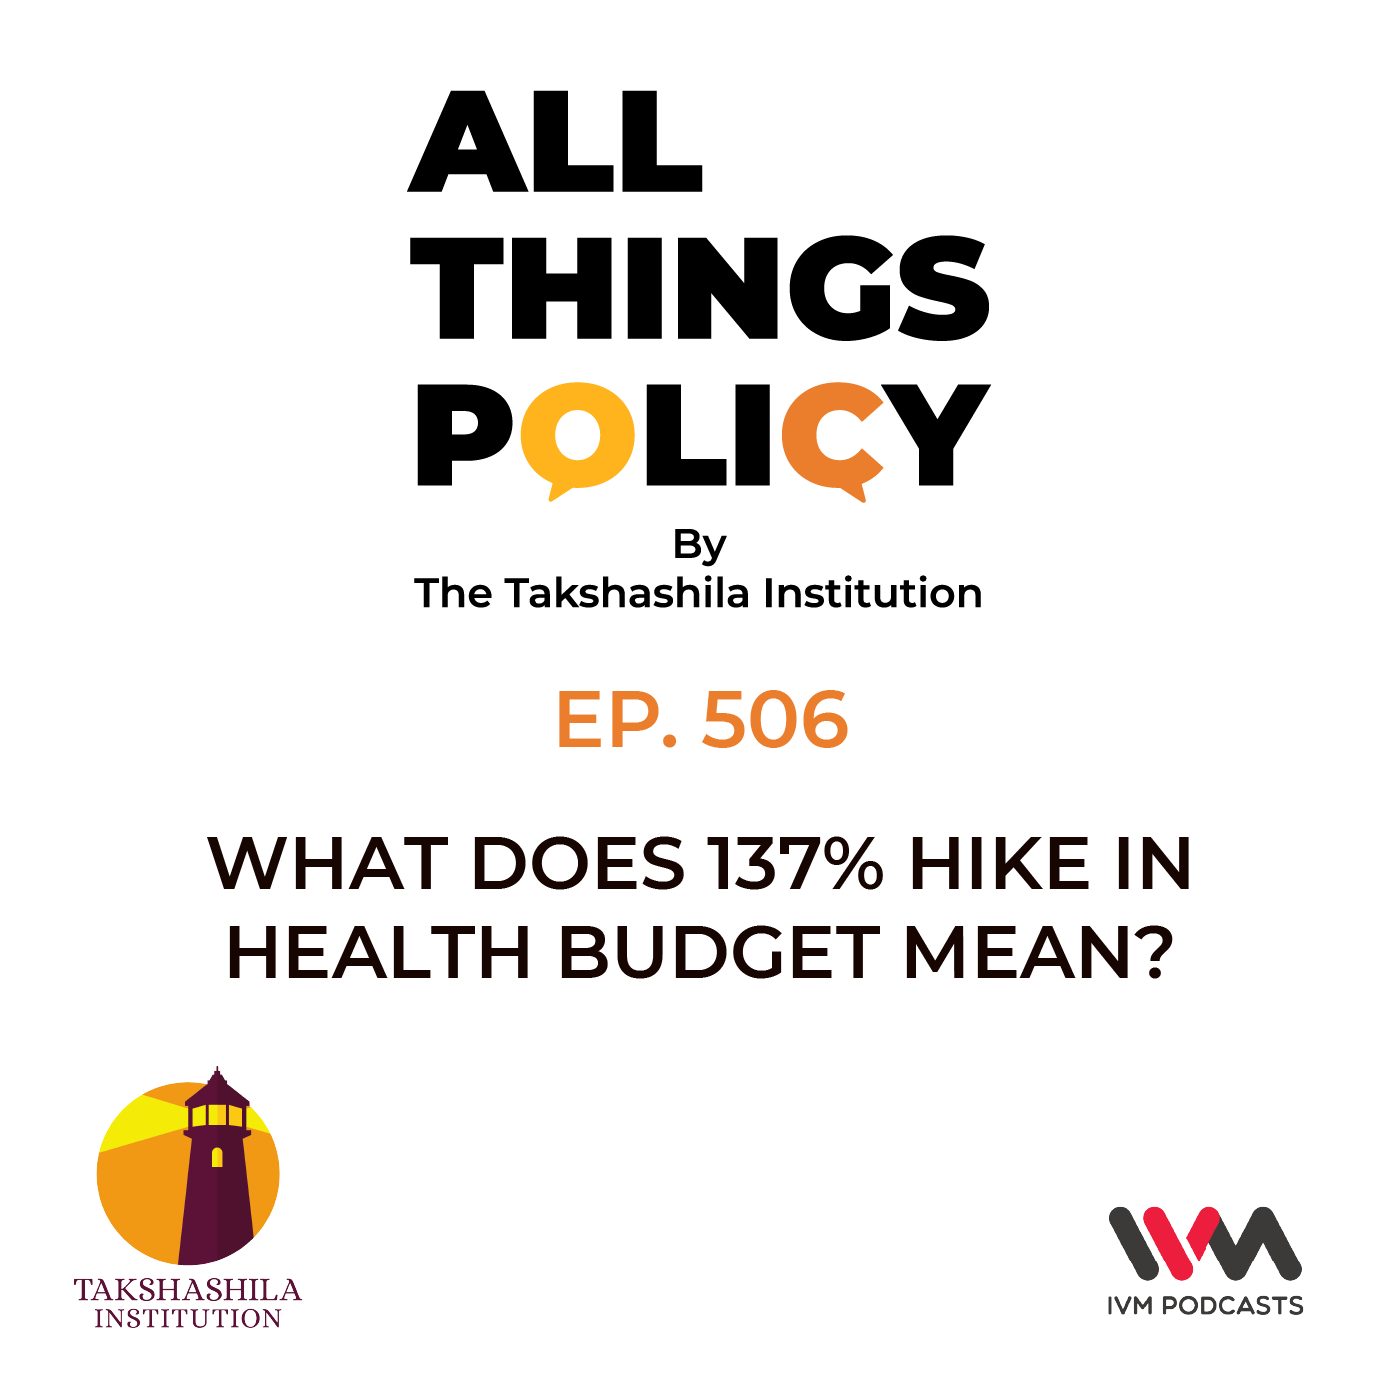 Ep. 506: What Does 137% Hike in Health Budget Mean?